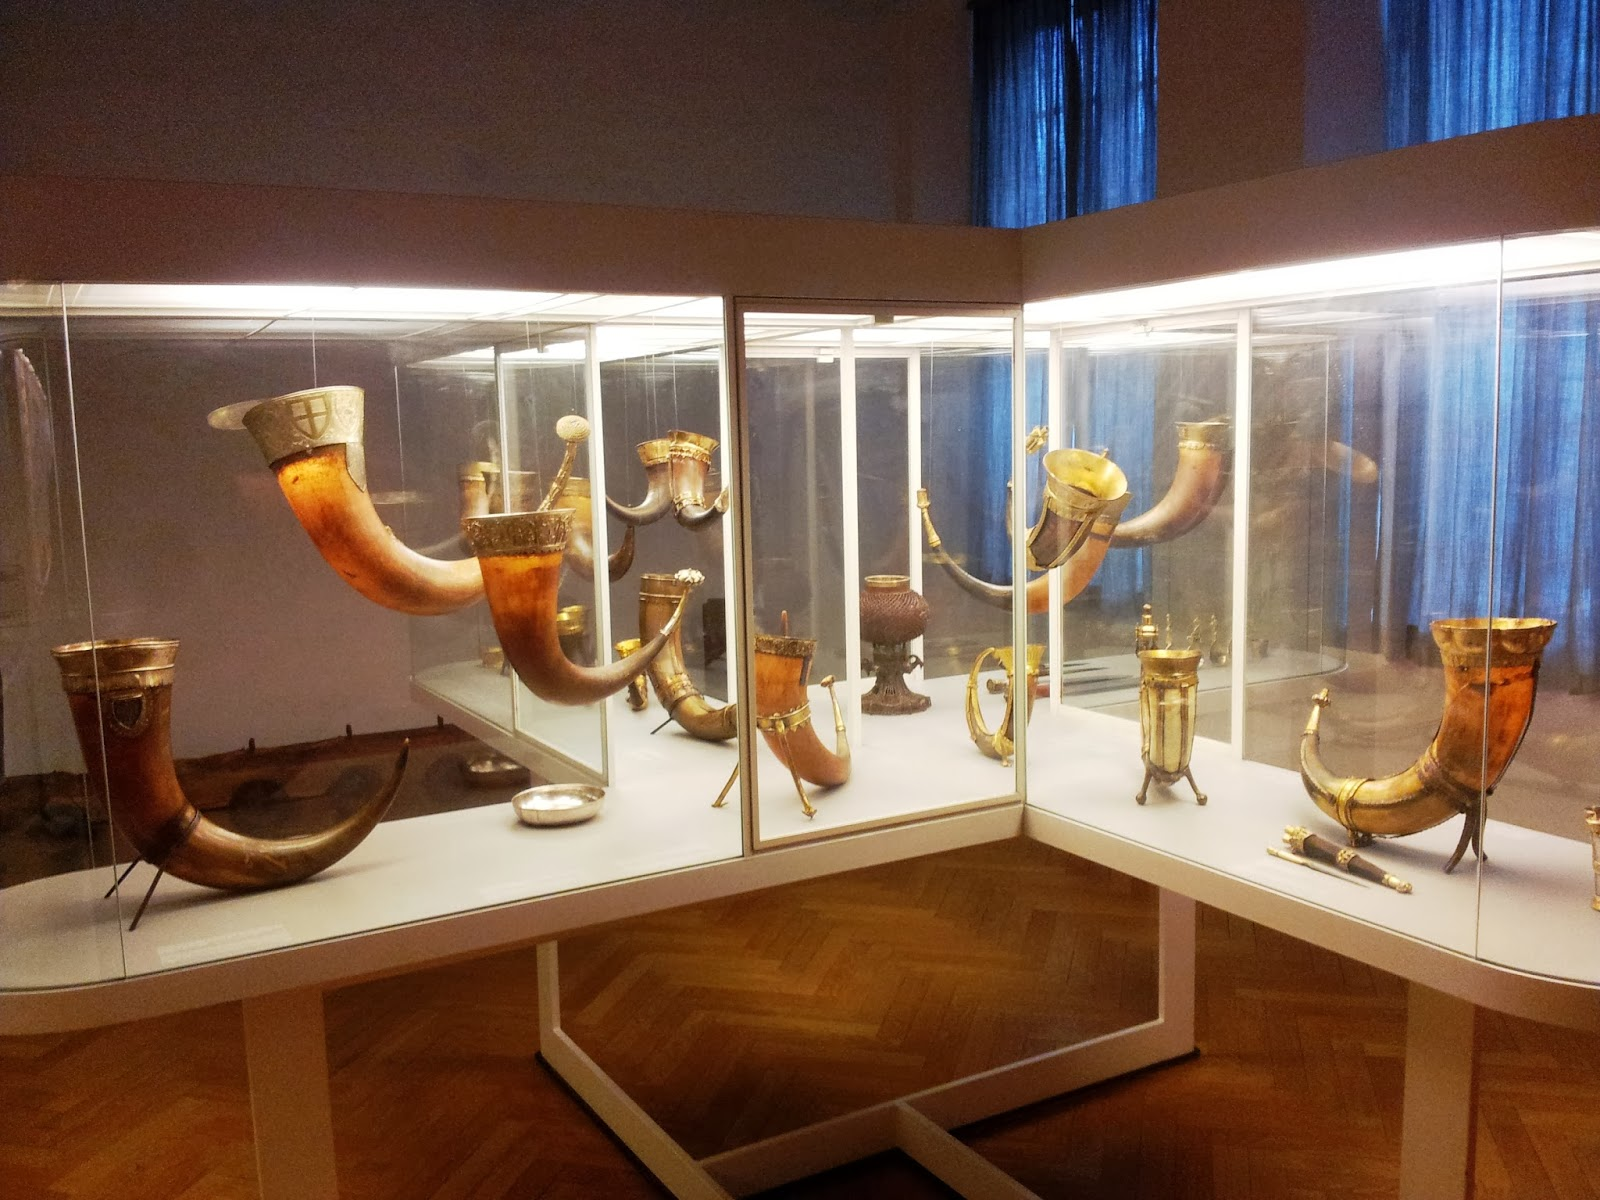 Viking horns in National Museum of Denmark, Copenhagen